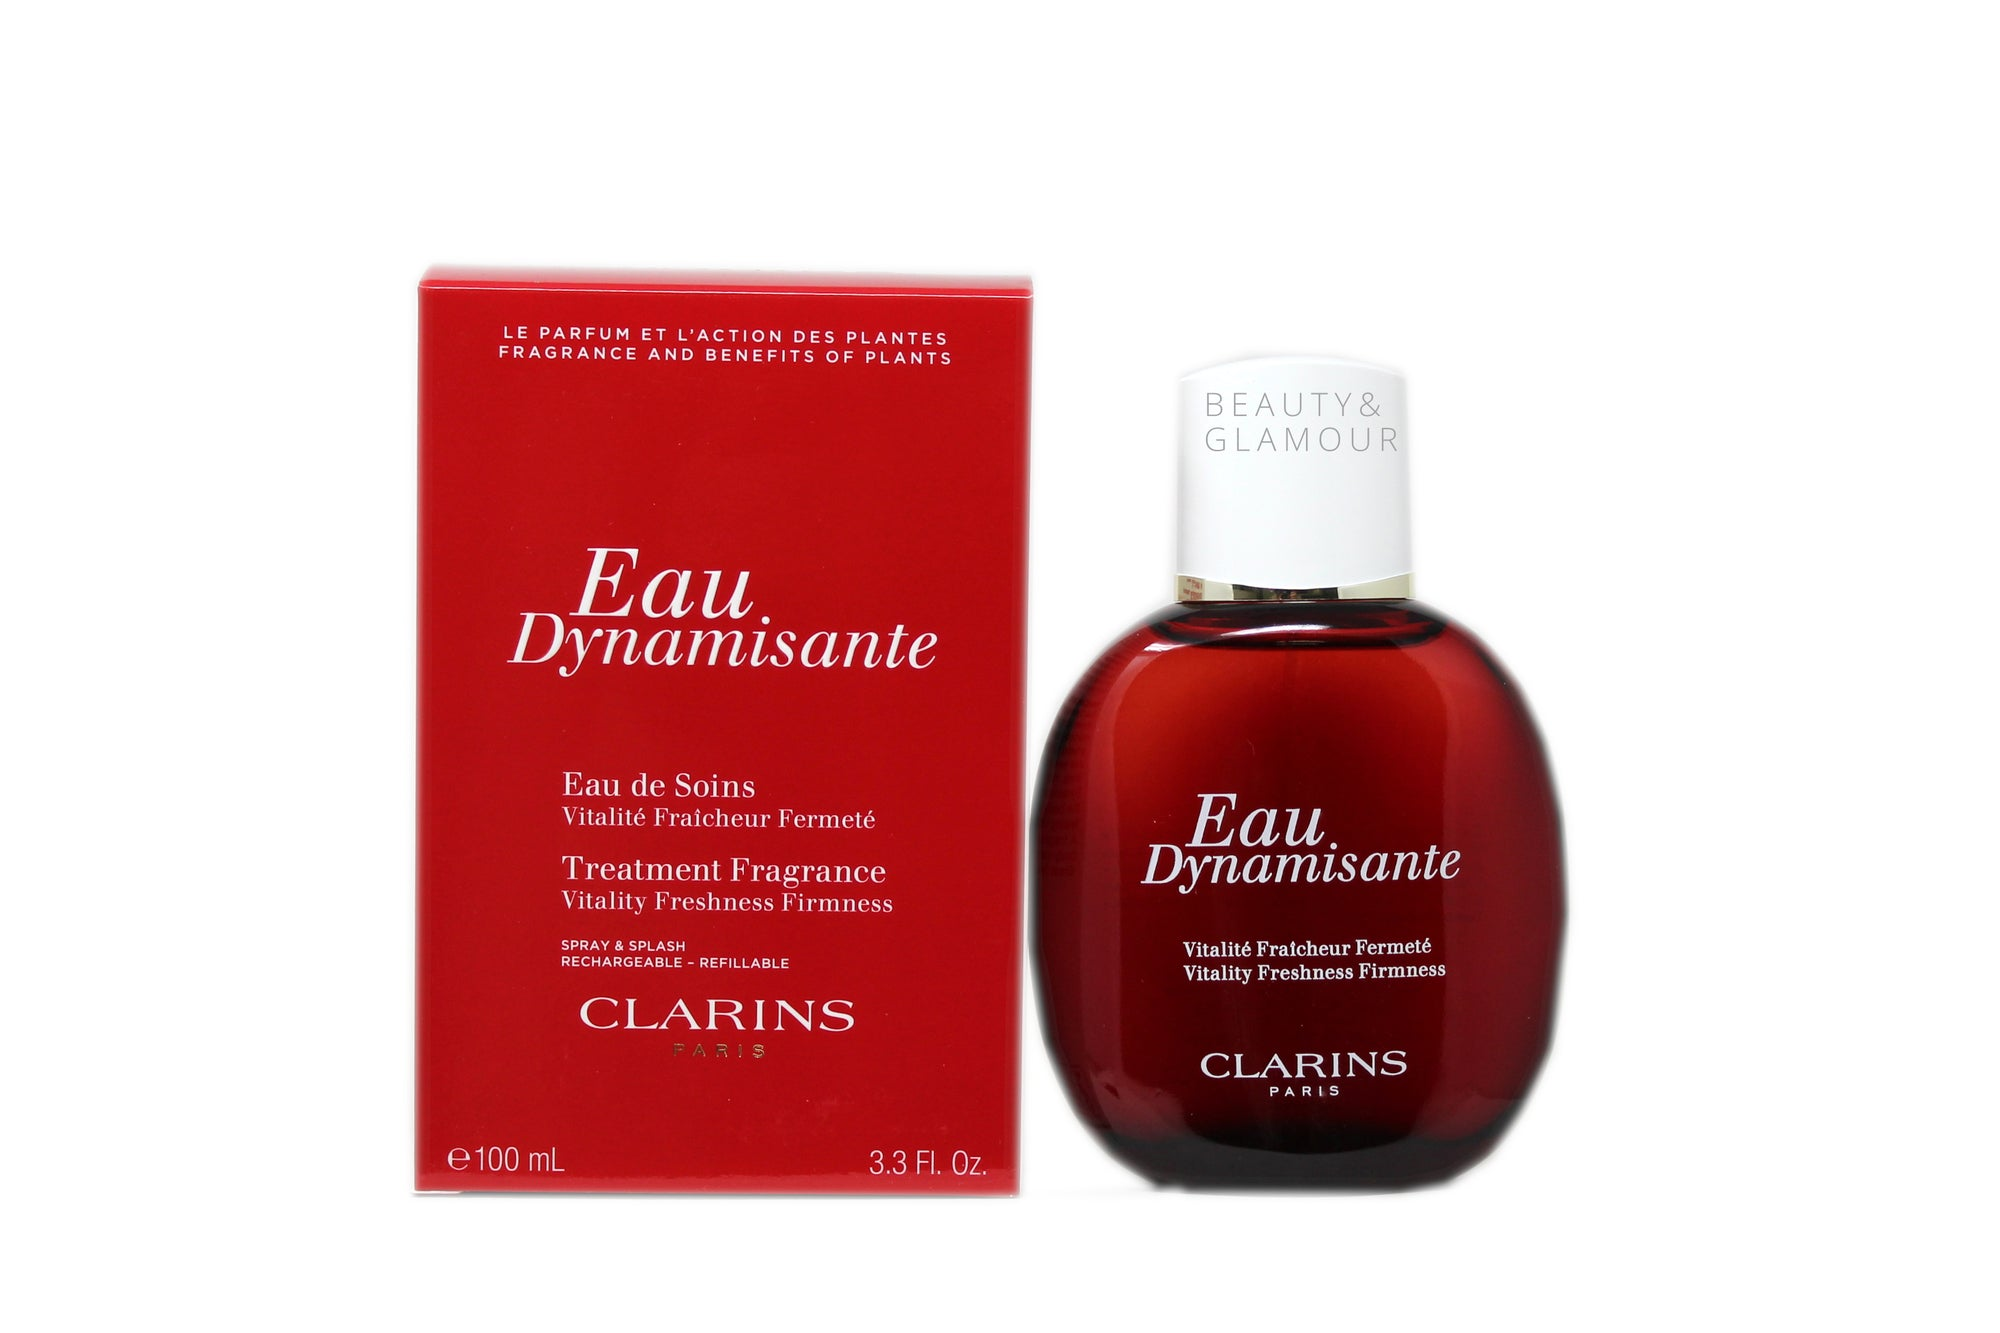 CLARINS EAU DYNAMISANTE TREATMENT FRAGRANCE  SPRAY & SPLASH REFILLABLE  AVAILABLE SIZE: 100 ML/3.3 FL.OZ.